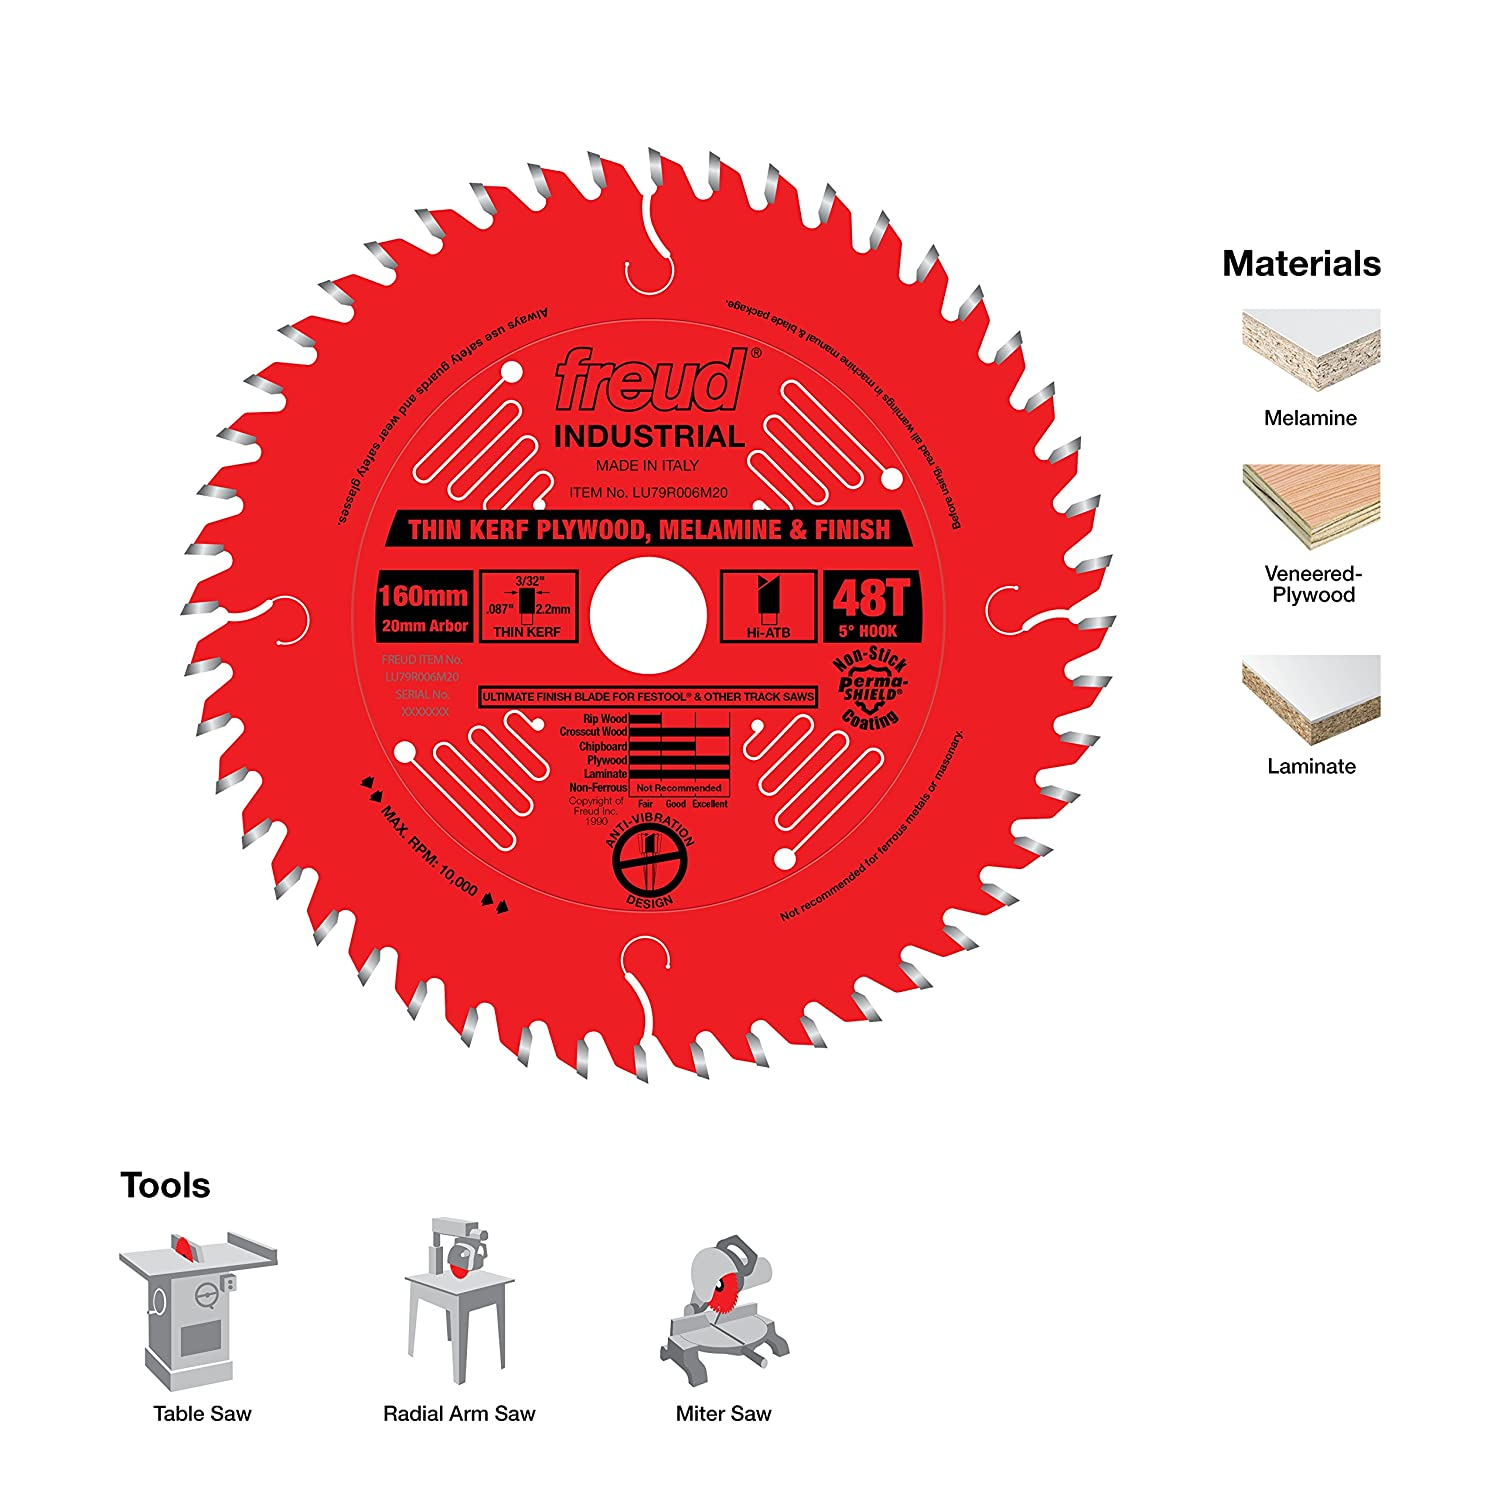 Freud 160mm x 48t mm thin kerf ultimate plywood melamine blade freud 160mm x 48t mm thin kerf ultimate plywood melamine blade lu79r006m20 circular saw blades amazon greentooth Gallery